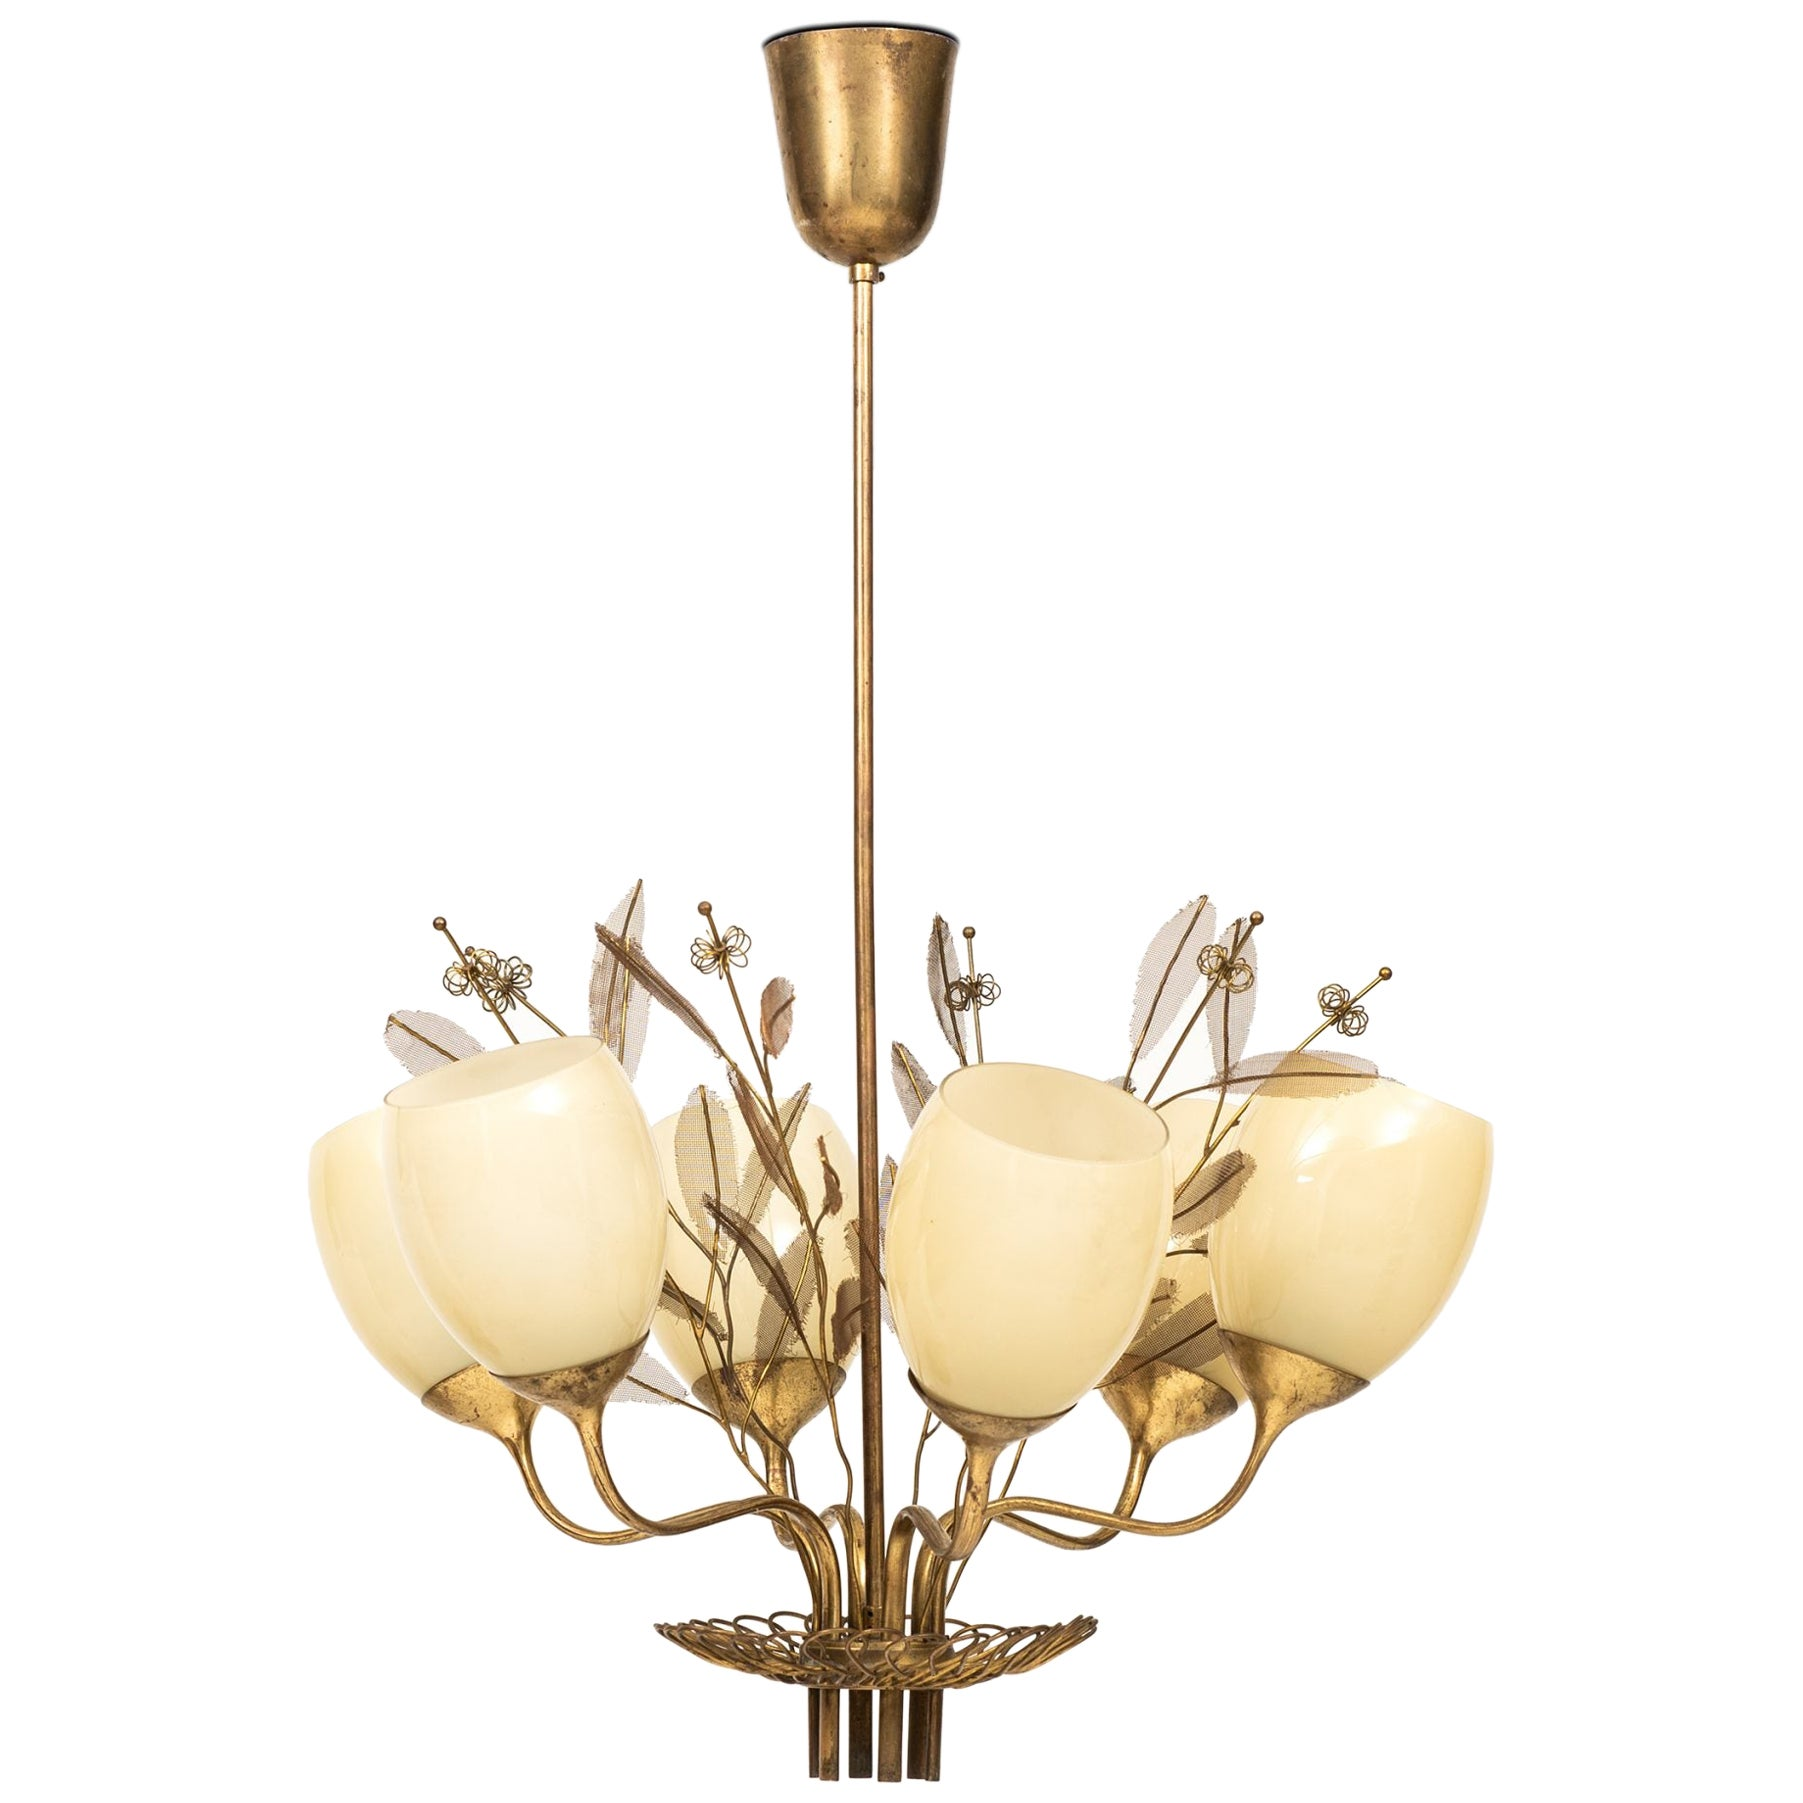 Paavo Tynell Ceiling Lamp Model 9020/6 Produced by Taito Oy in Finland